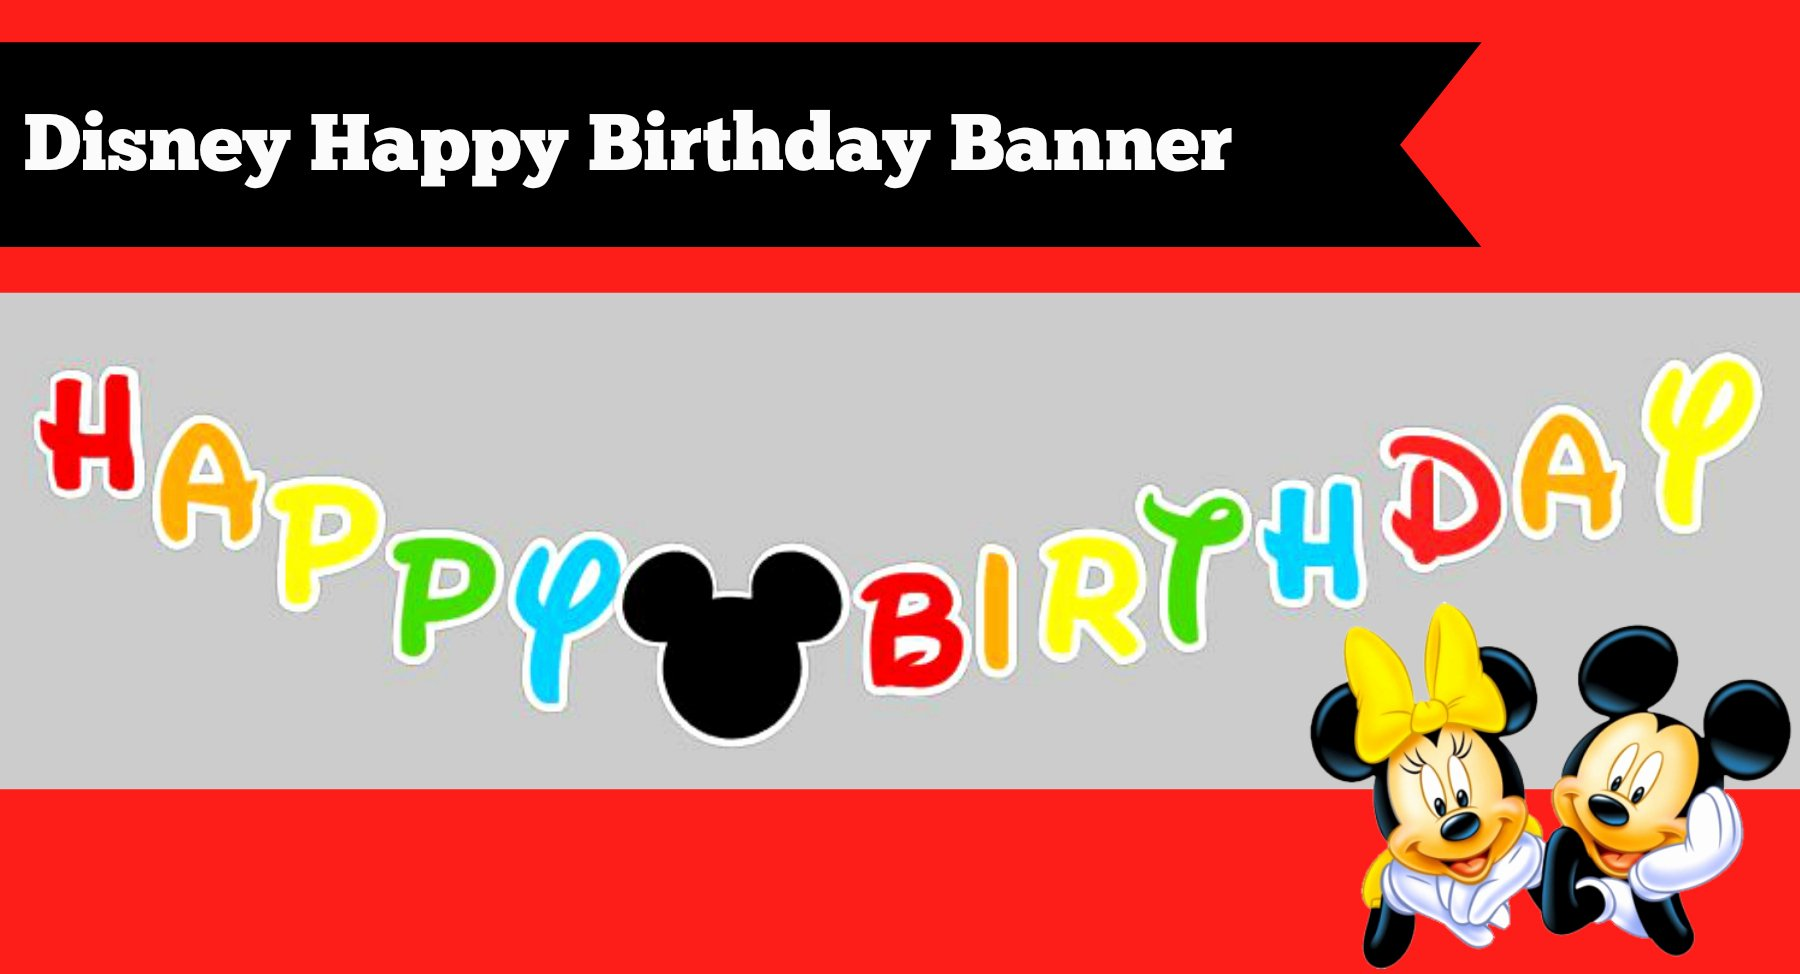 Happy Birthday Banner Template Unique How to Make A Diy Mickey Mouse Clubhouse Inspired Happy